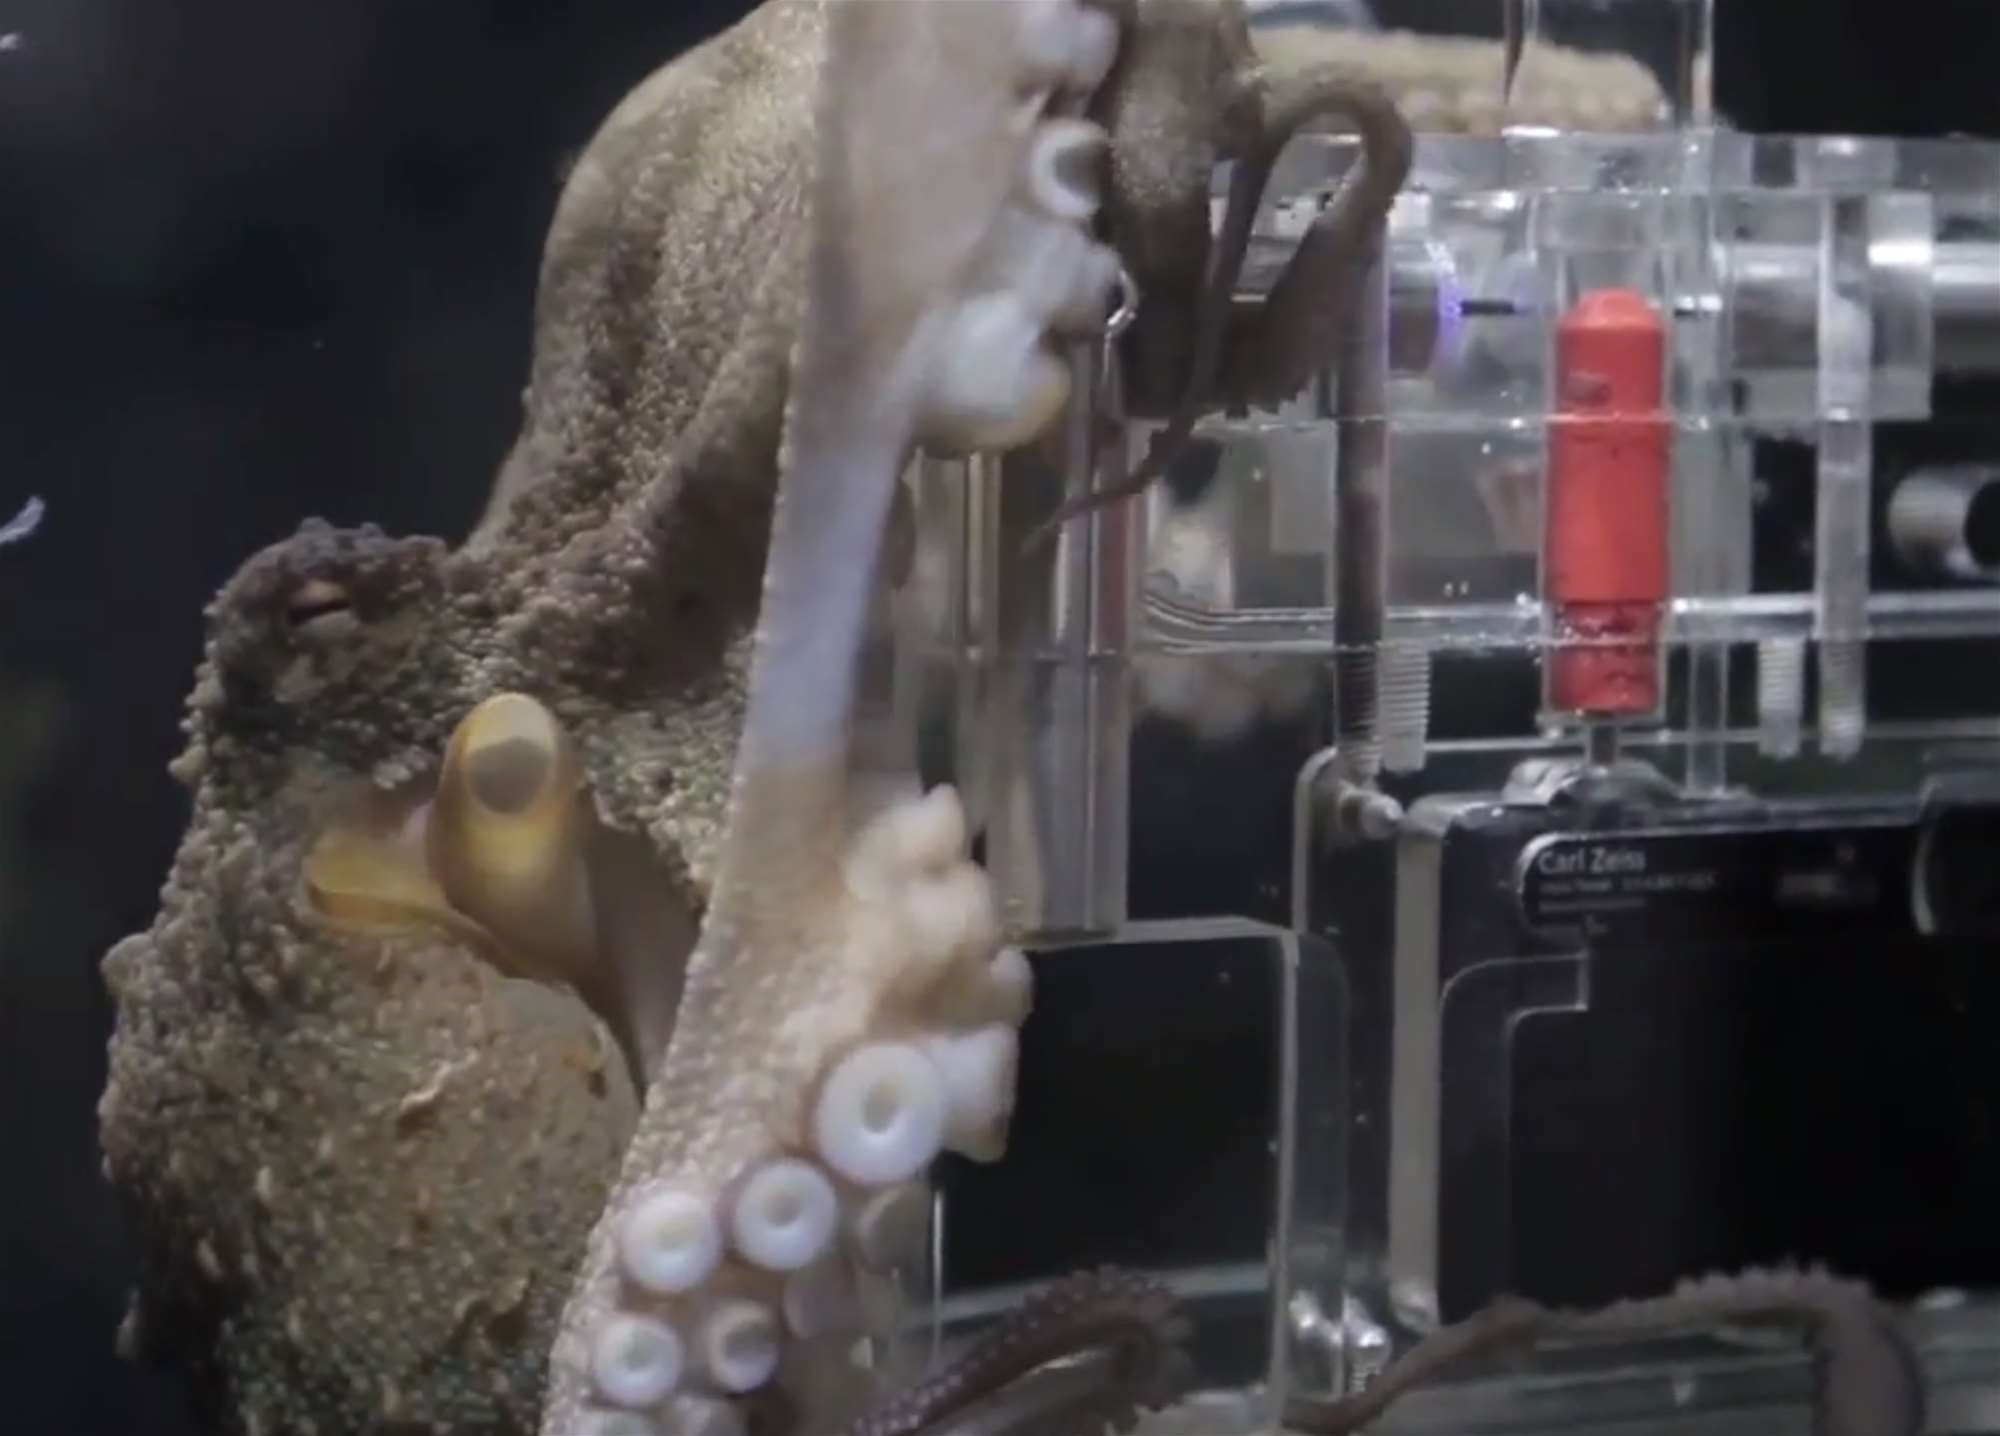 Watch An Adorable Octopus Photographer In Action